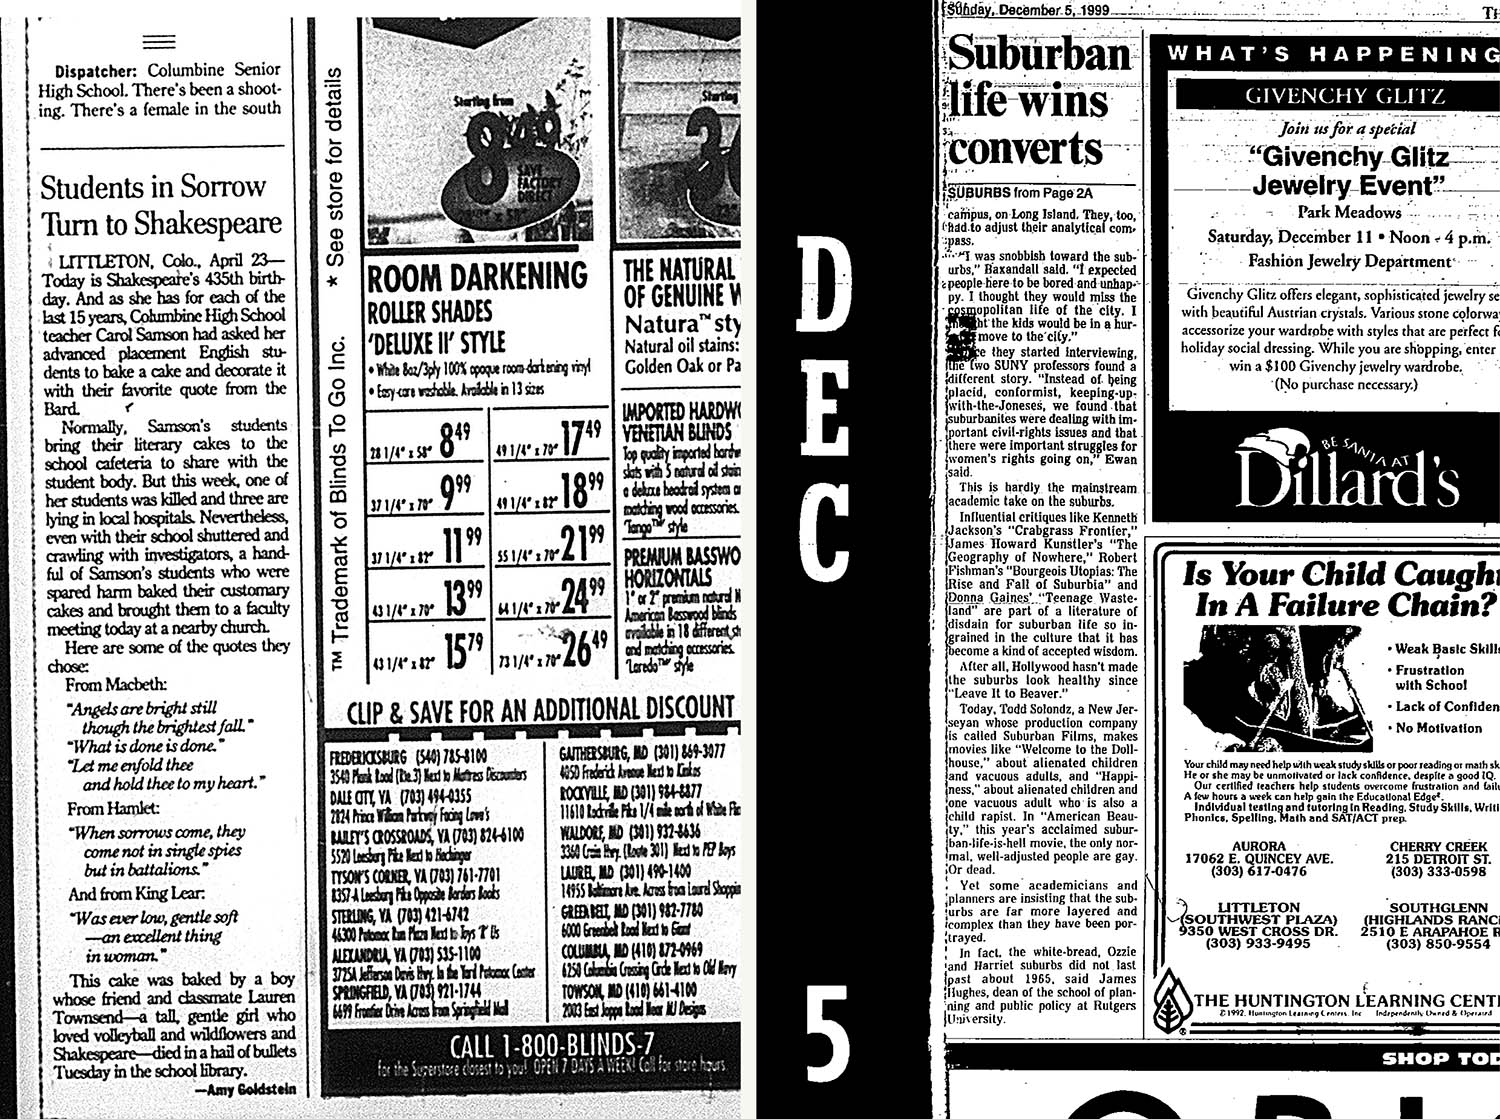 (L): The <i>Washington Post</i>, April 24, 1999. (R): The <i>Denver Post</i>, December 5, 1999. (R): <i>Nieman Reports</i>, September 15, 2005.